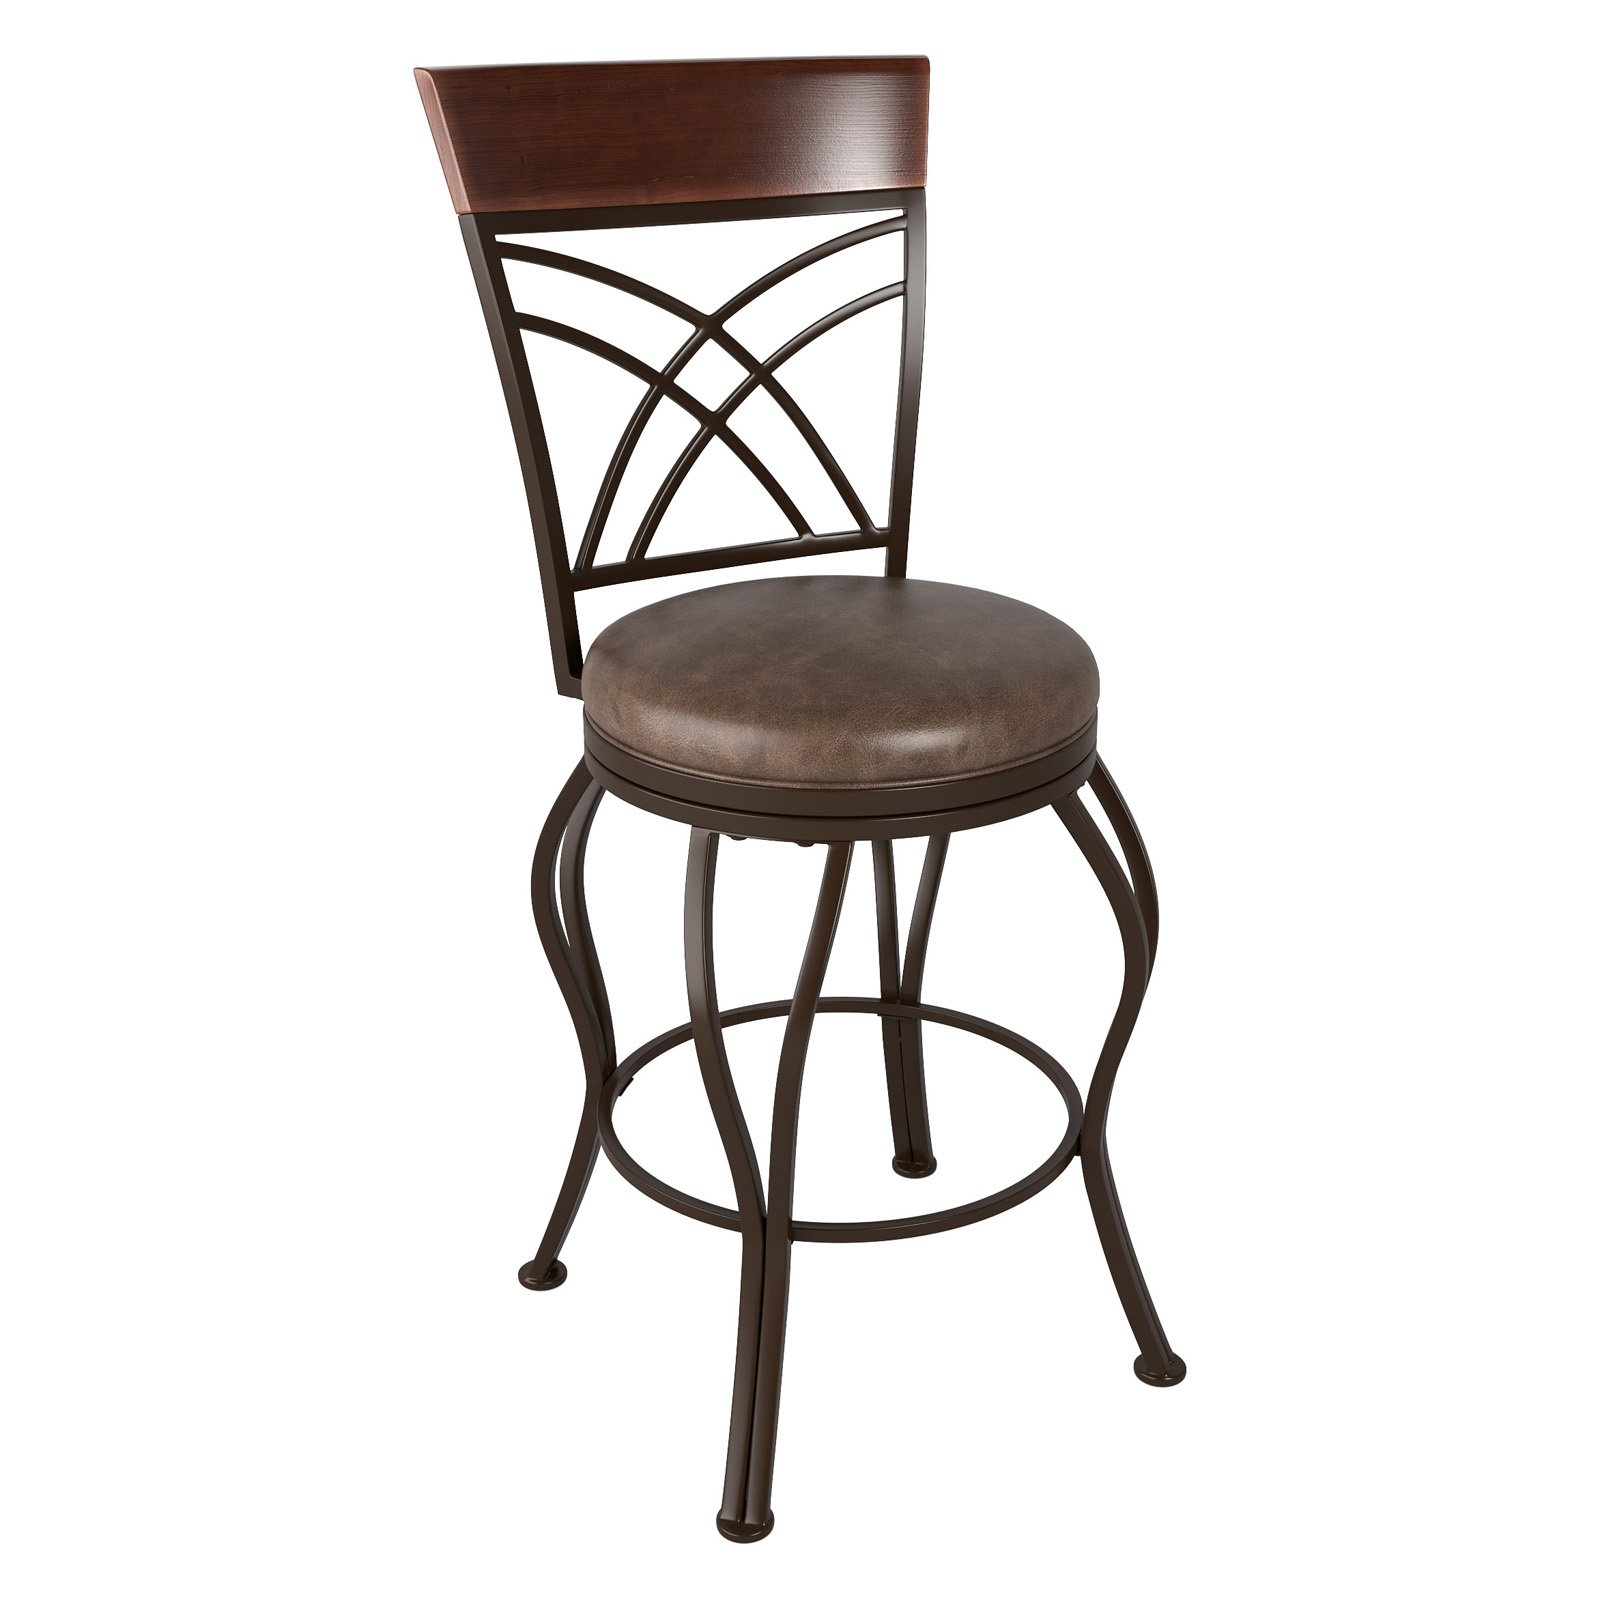 CorLiving Jericho Metal Counter Height Barstool with Rustic Brown Bonded Leather Seat